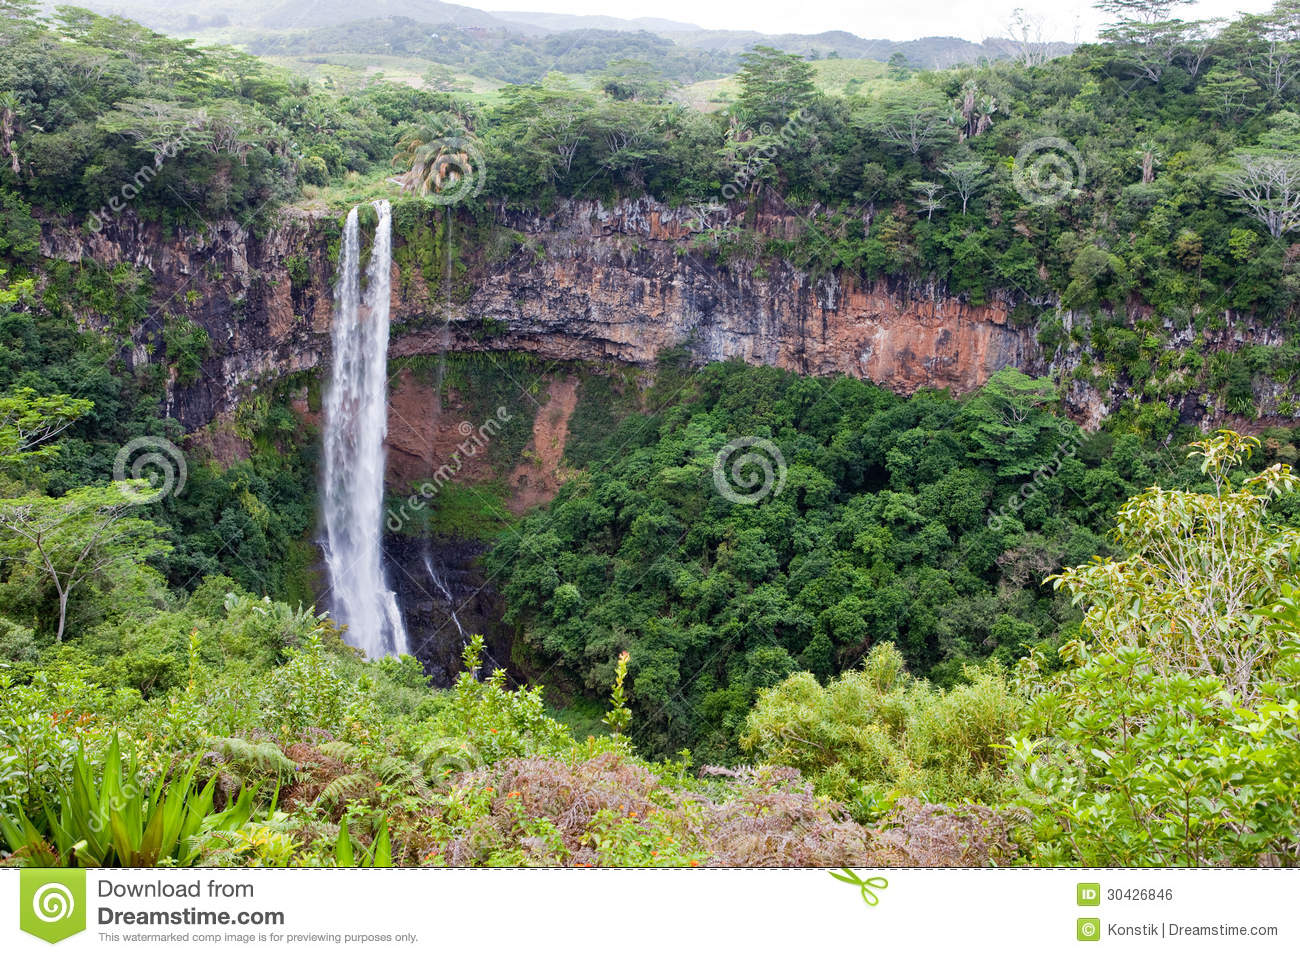 Chamarel waterfalls in Mauritius.Landscape in a sunny day